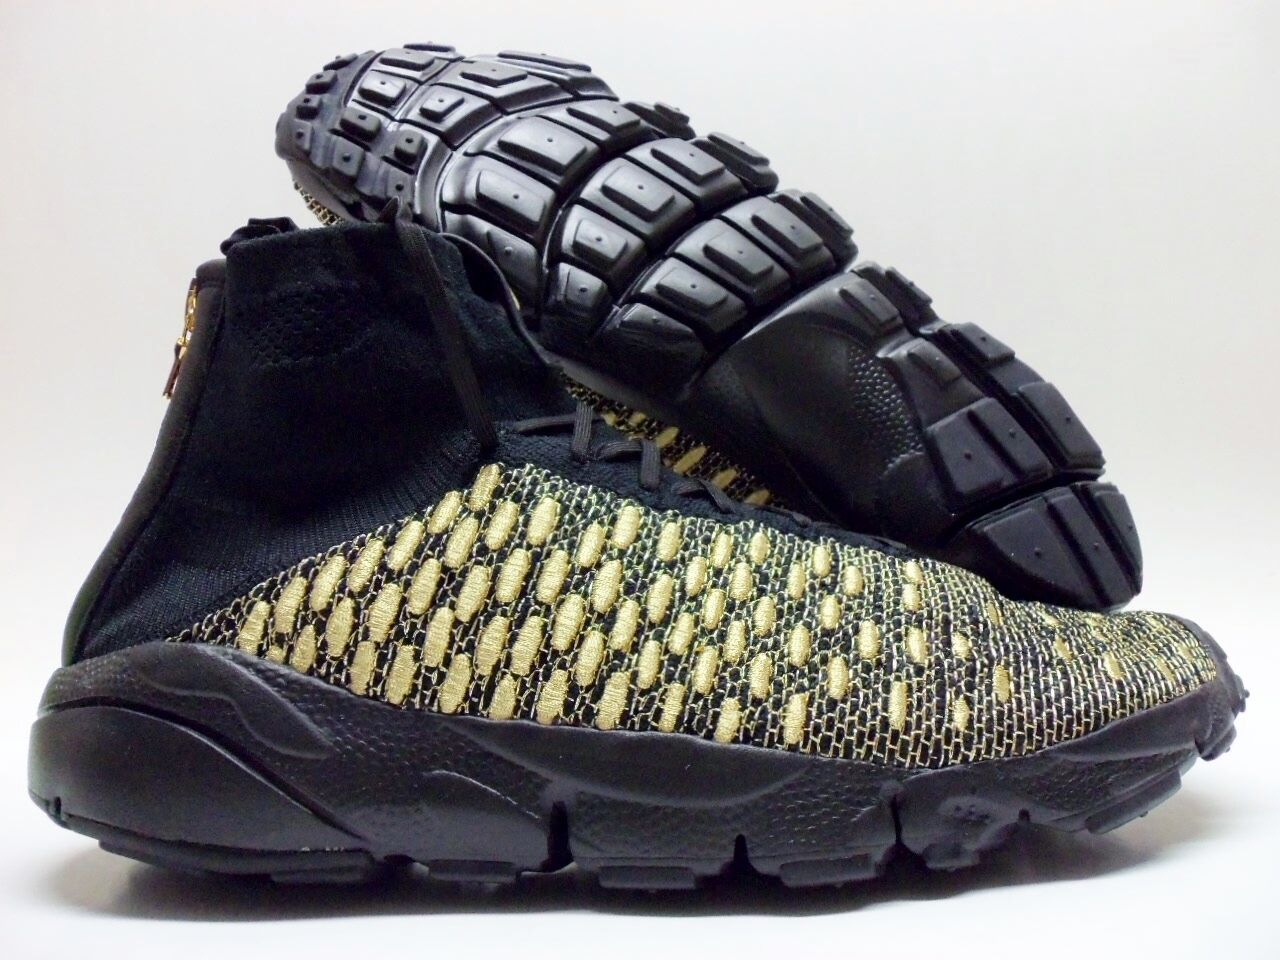 NIKE AIR FOOTSCAPE MAGISTA QS LION OLIVIER ROUSTEING SIZE MEN'S 11 [834905-007]